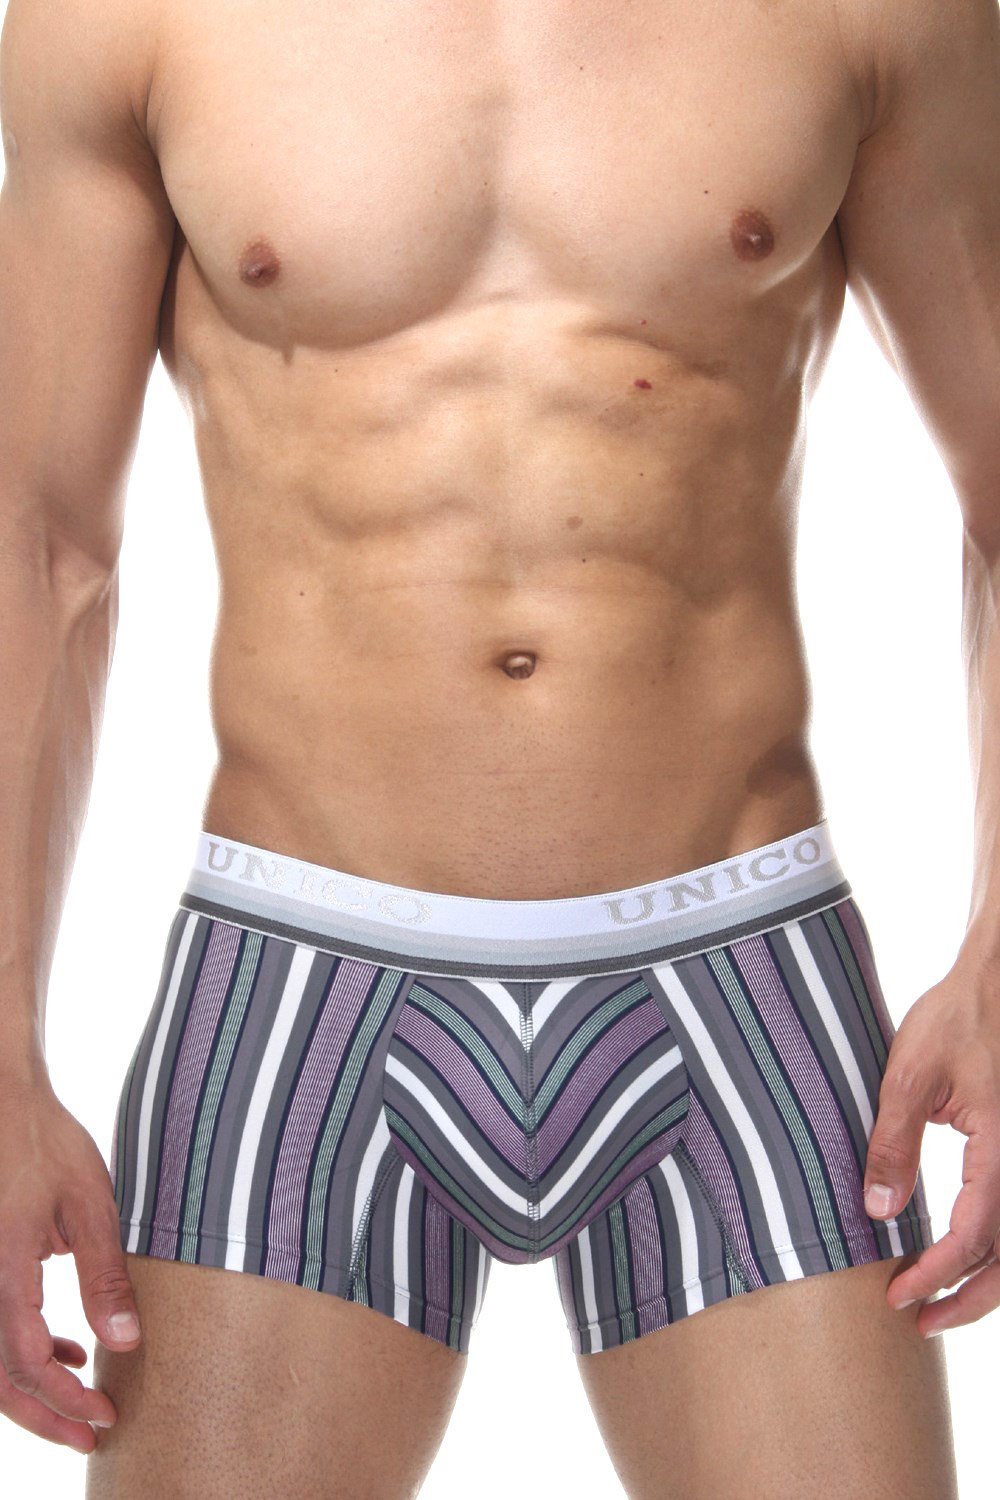 MUNDO UNICO SHORT SANSCRITO trunks at oboy.com